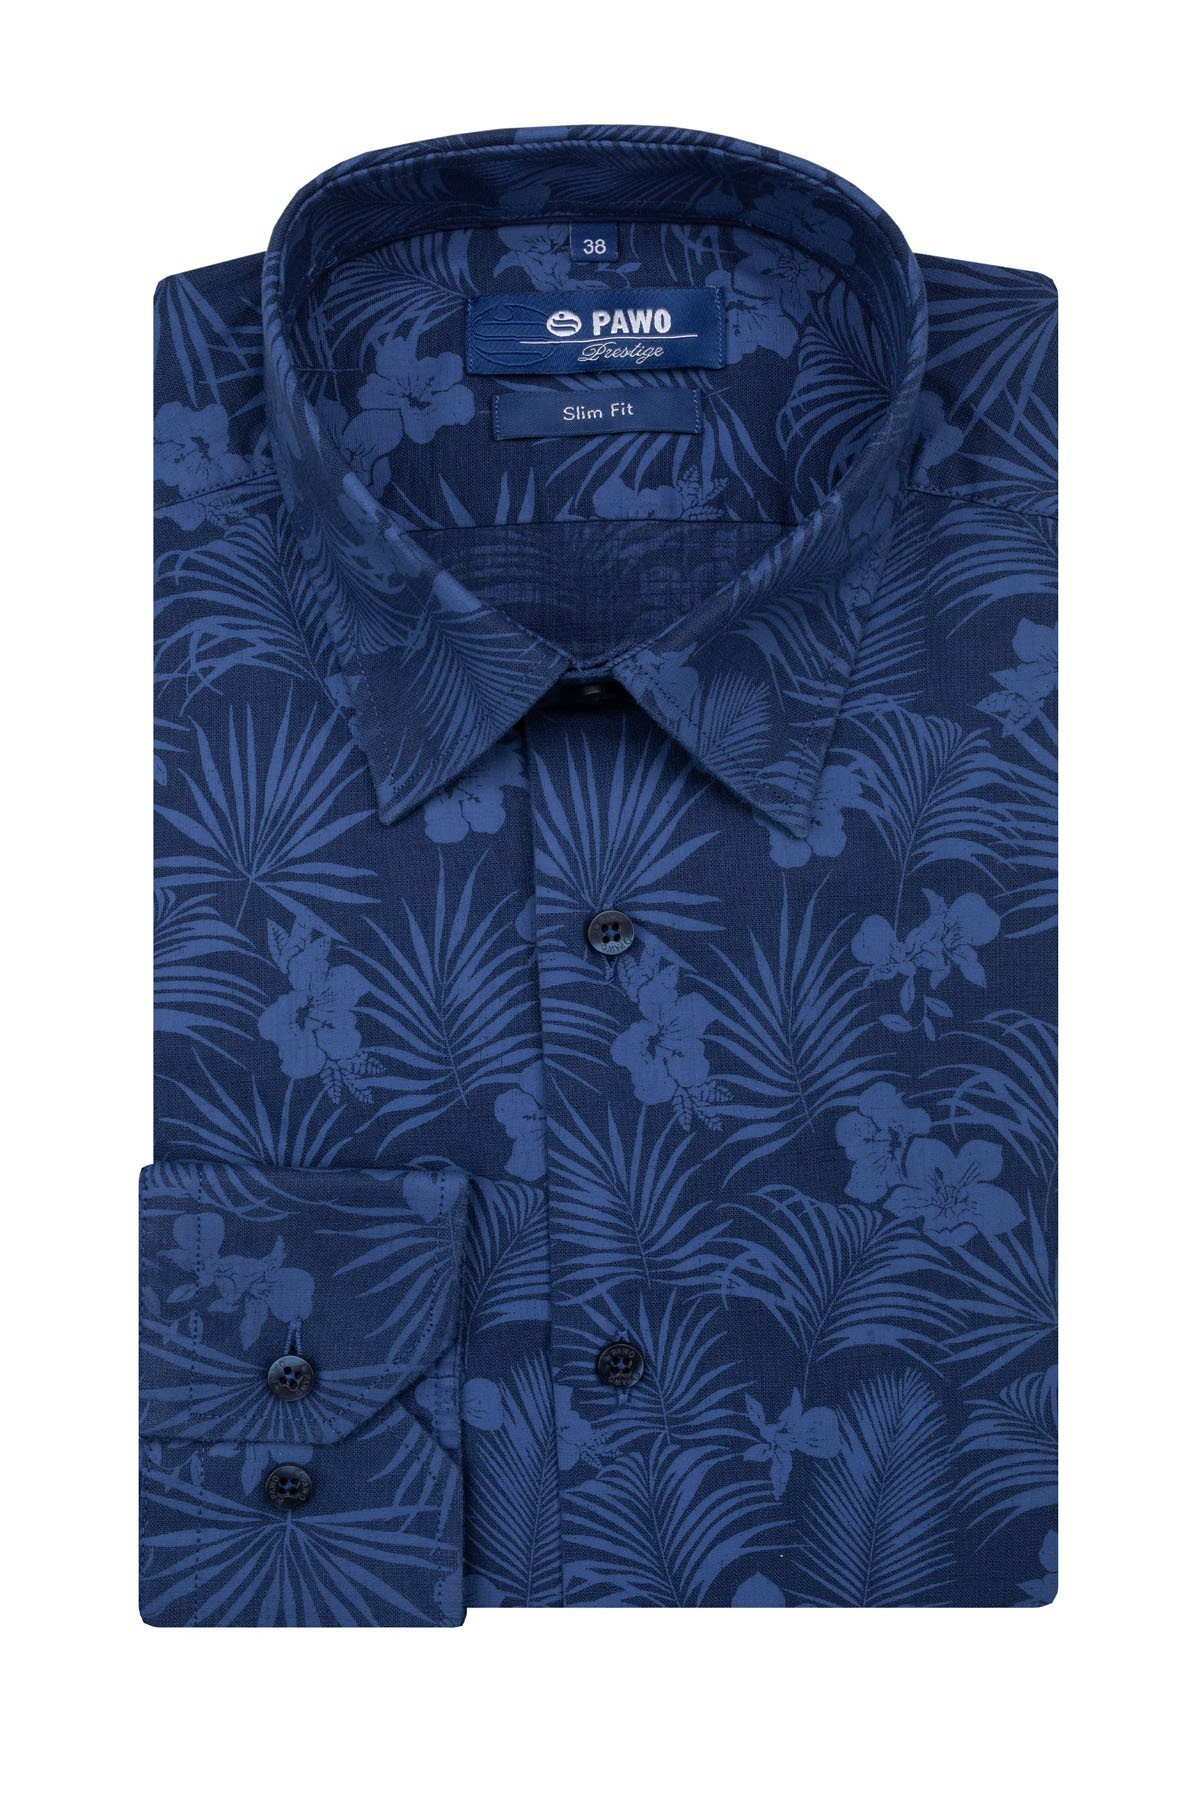 Navy men's shirt with floral pattern